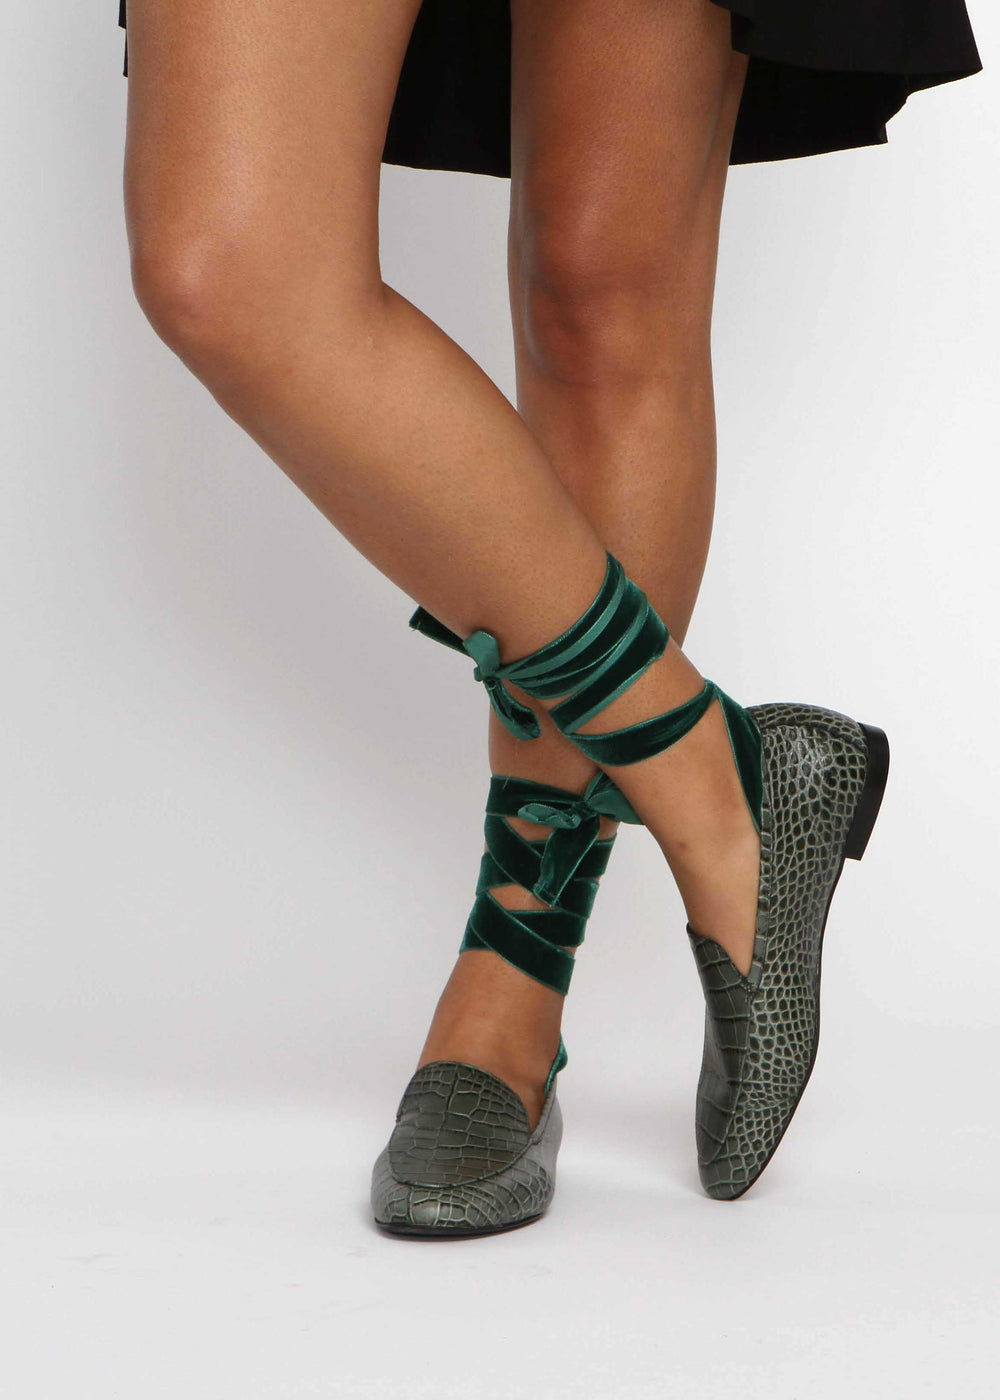 Frock x A. Soliani Loafer - Sage Green - The Frock NYC